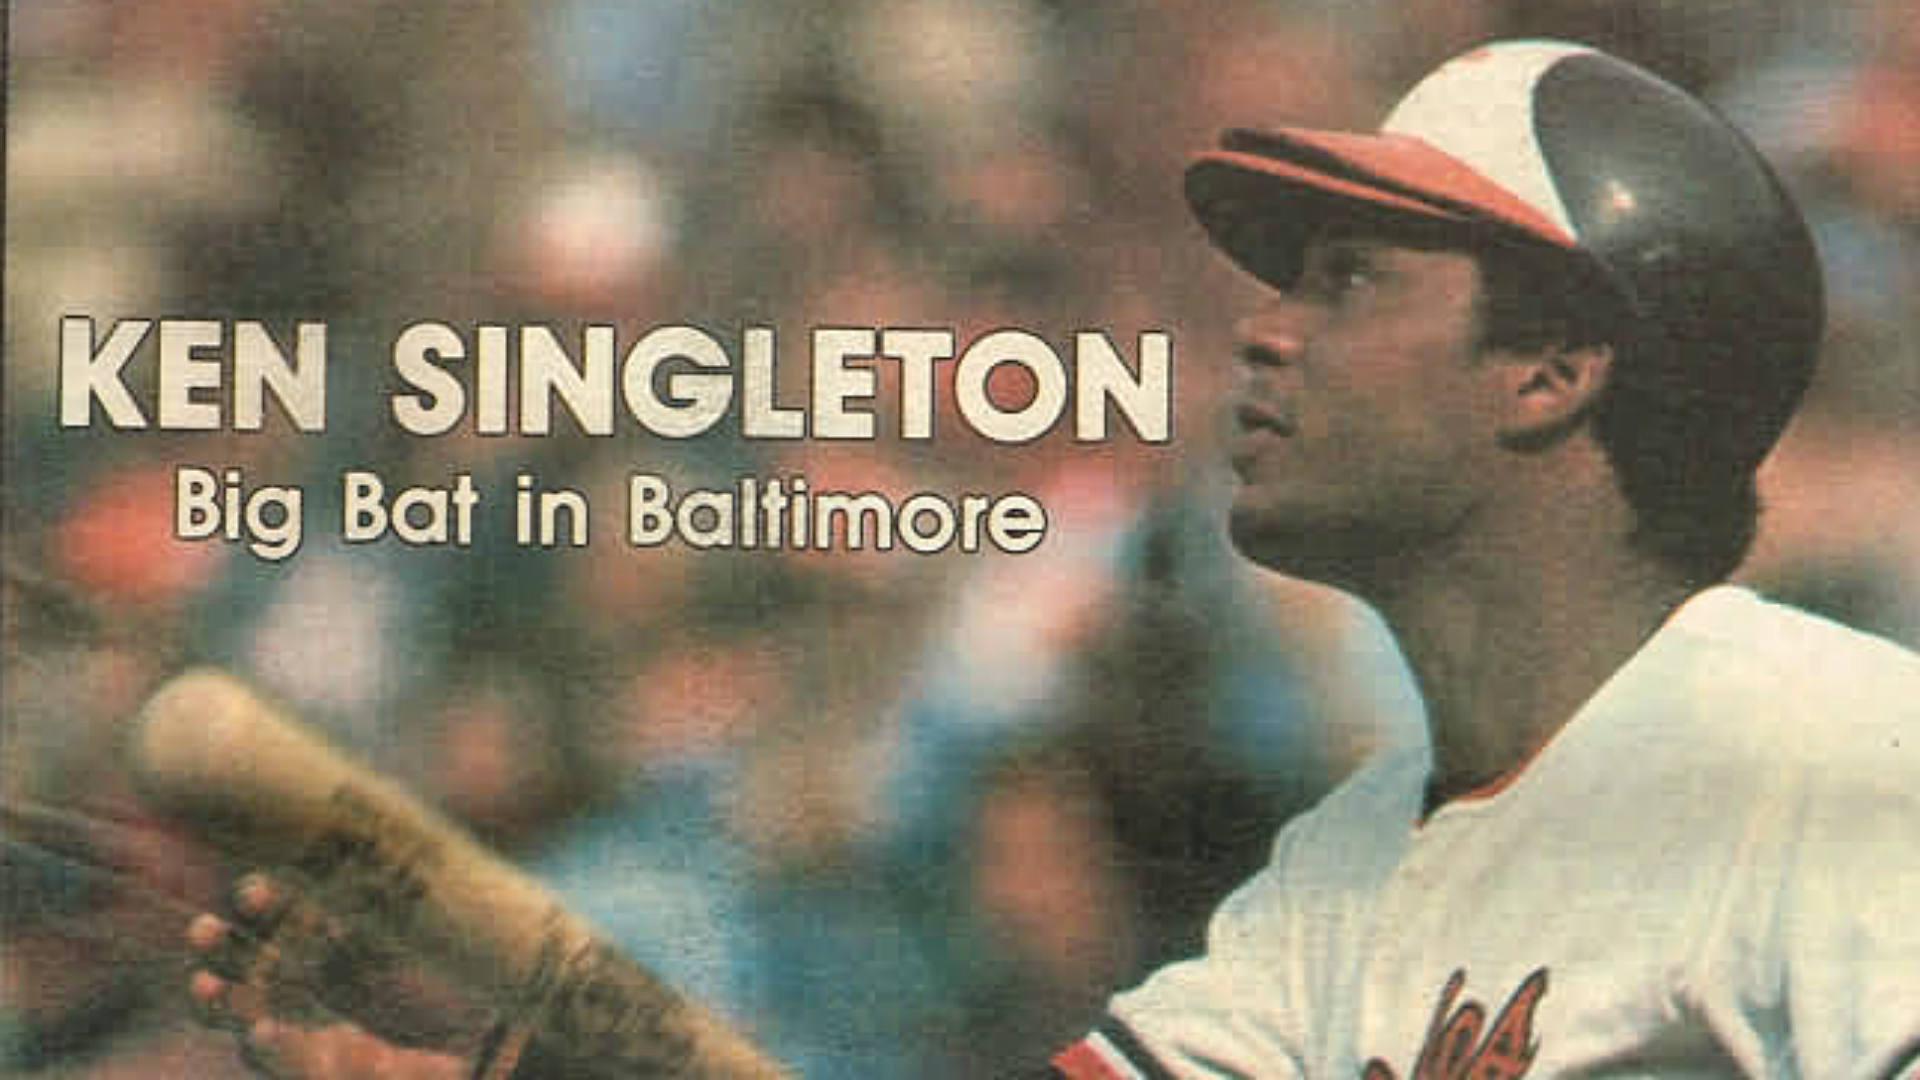 Is ken singleton a hall of famer